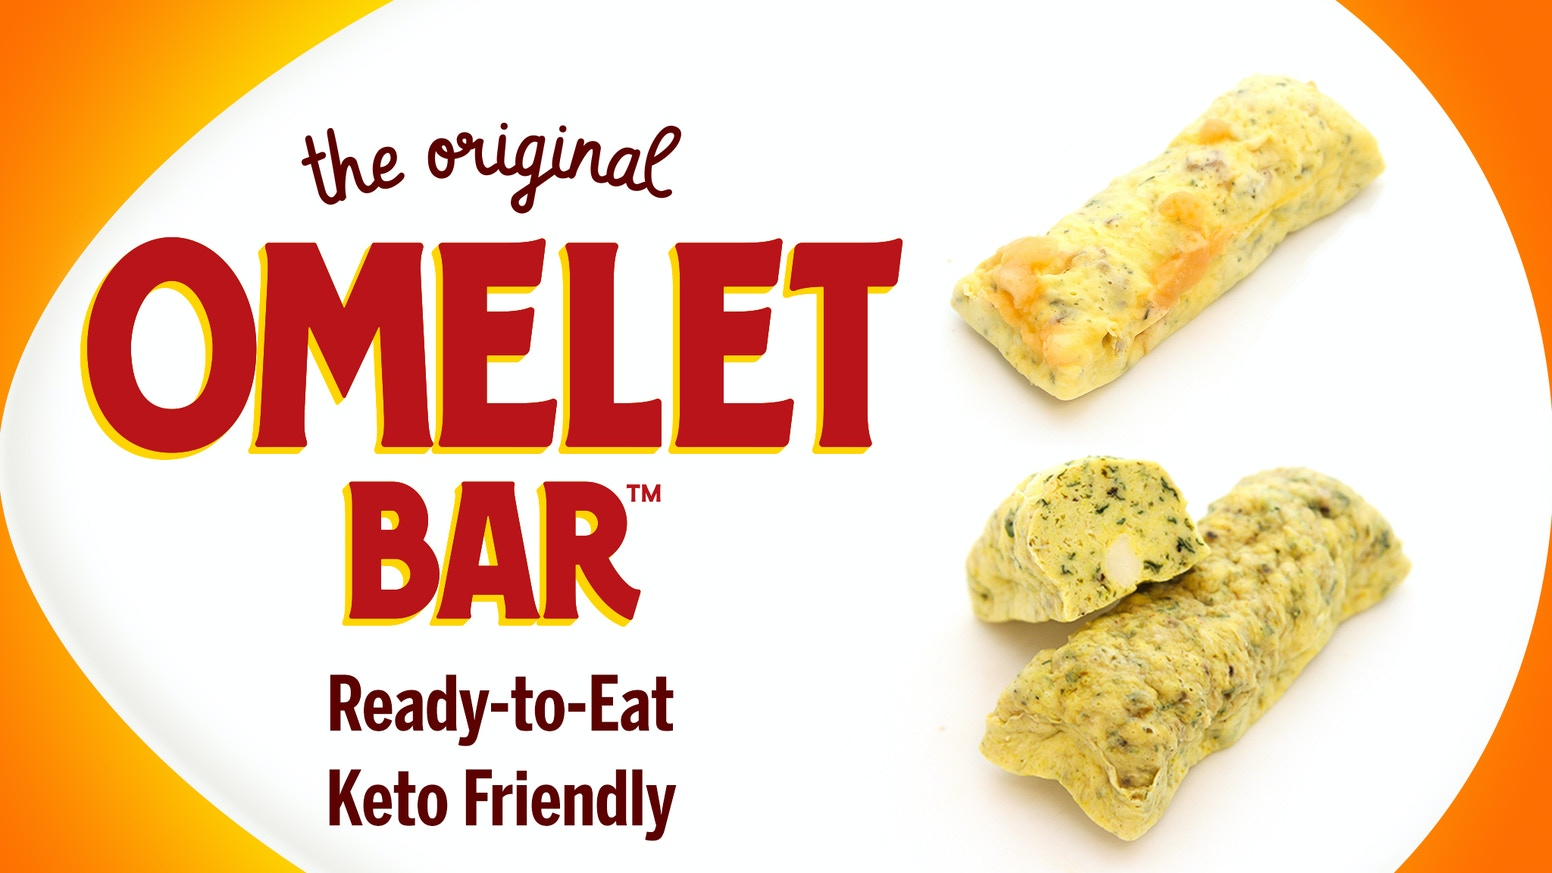 Anytime/Anywhere, KETO-Friendly, Clean-Label, Shelf-Stable, Delicious & Nutritious Breakfast Bars (Featuring 100% Pasture Raised Eggs!)